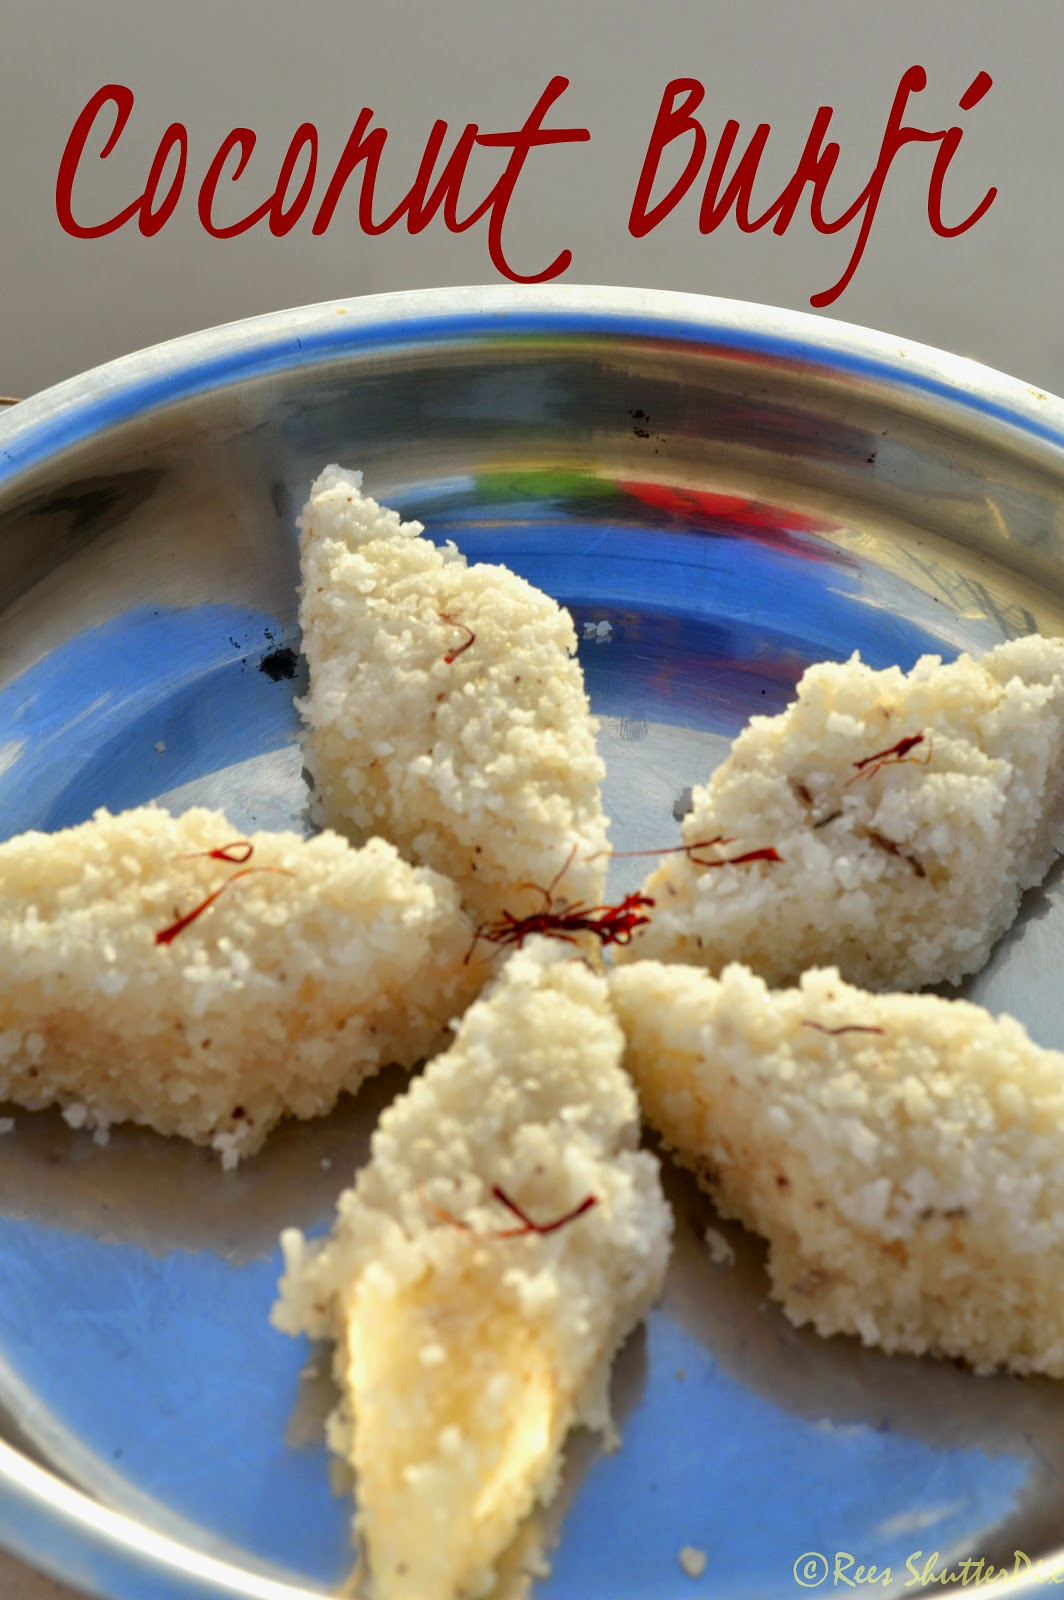 how to make thenga burfi/ coconut burfi at home